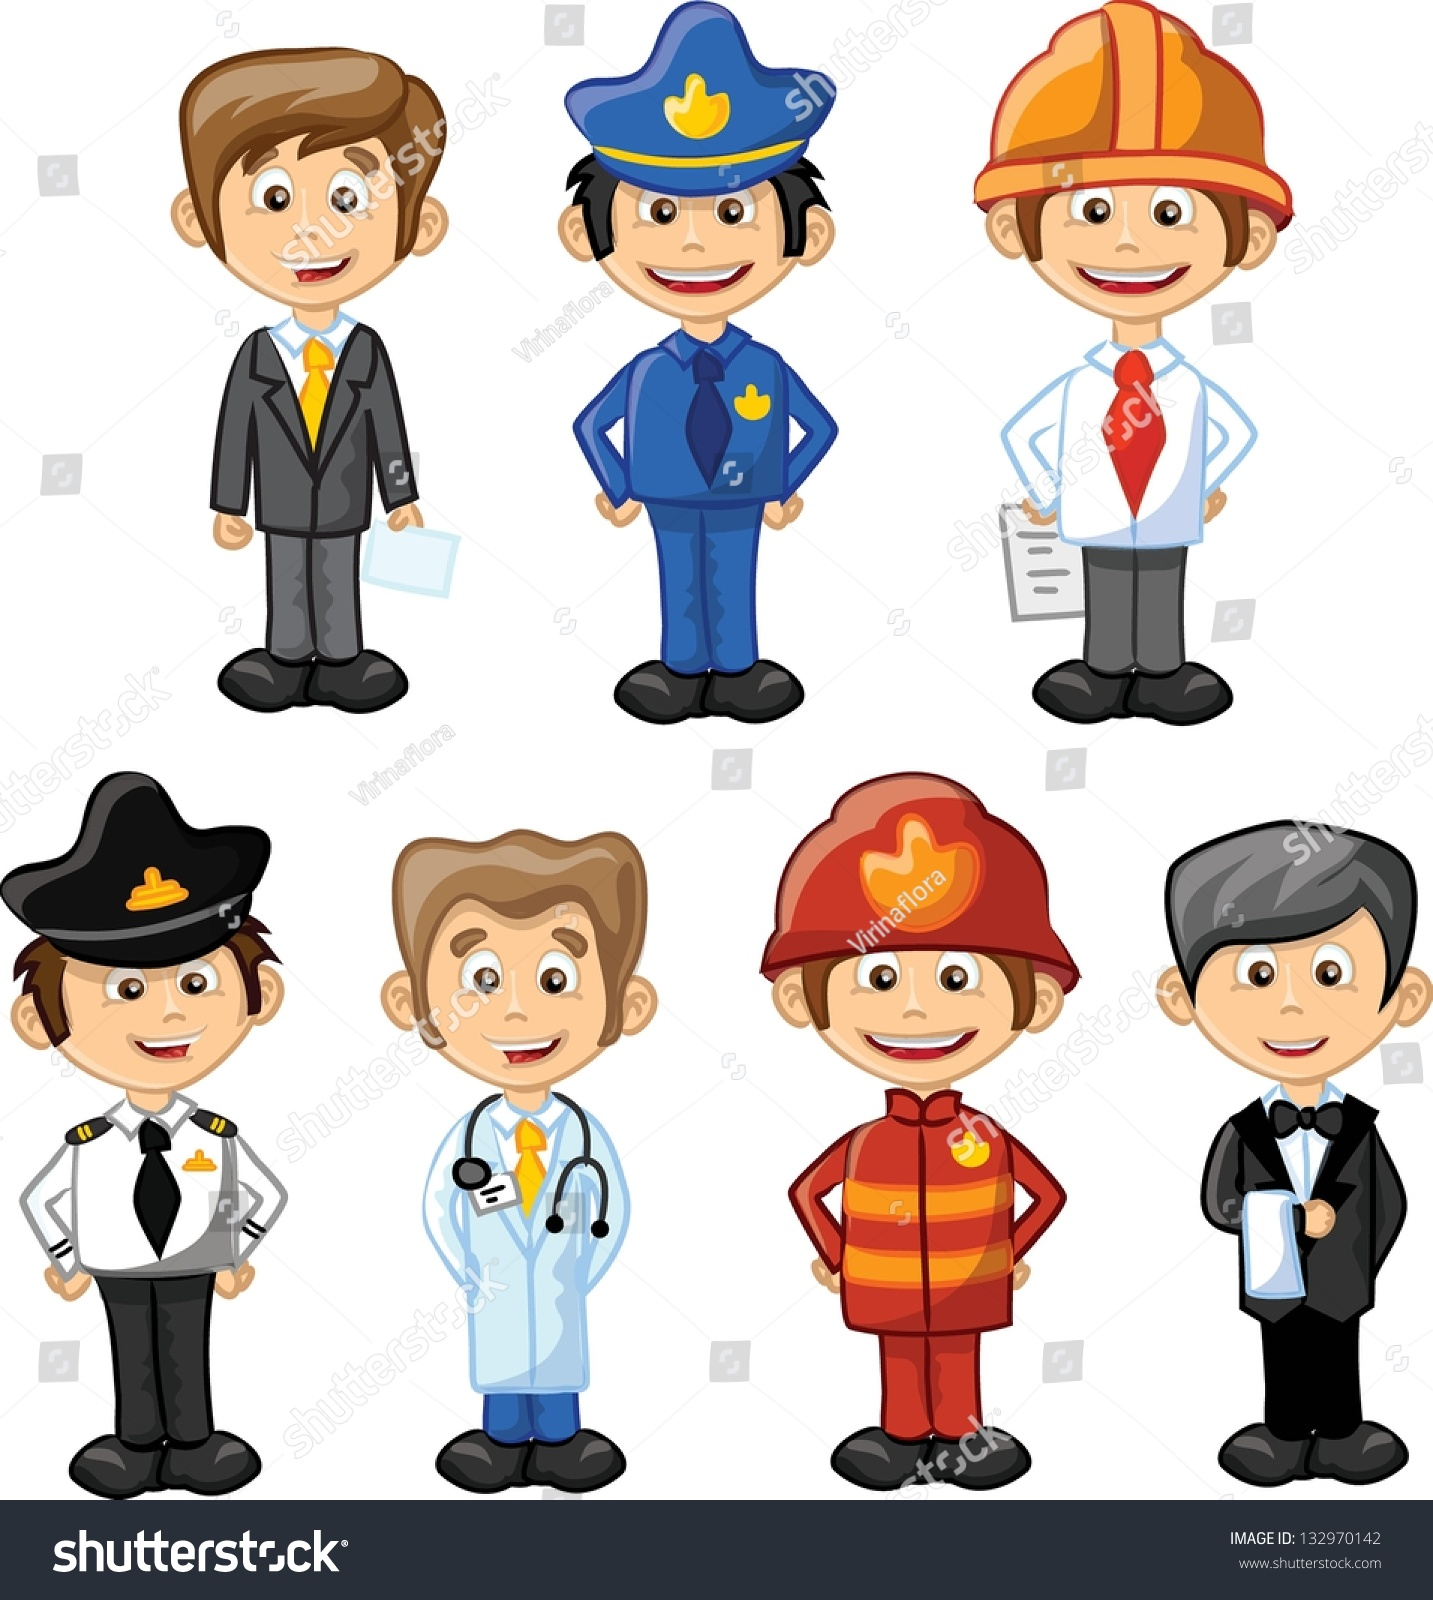 Cartoon Characters Jobs : Cartoon characters manager chefpoliceman waiter singer